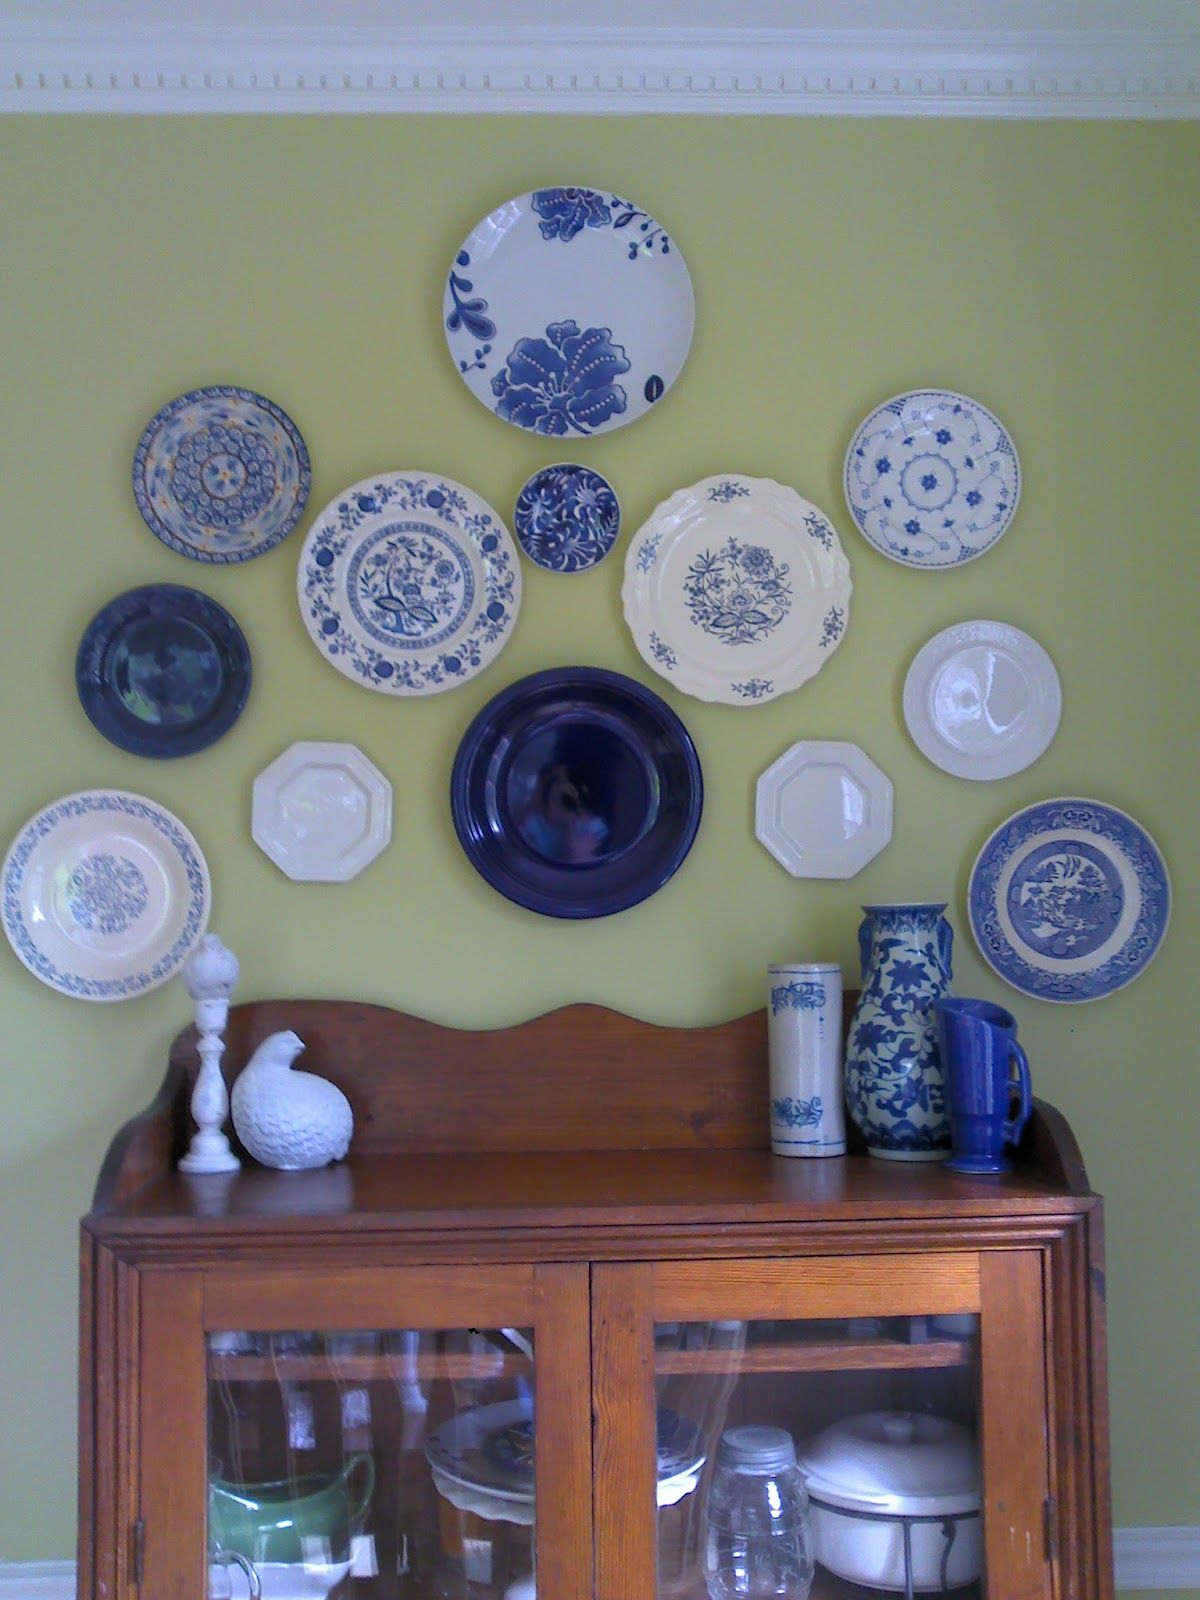 I Have A Blue And White Plate Collection Plates On